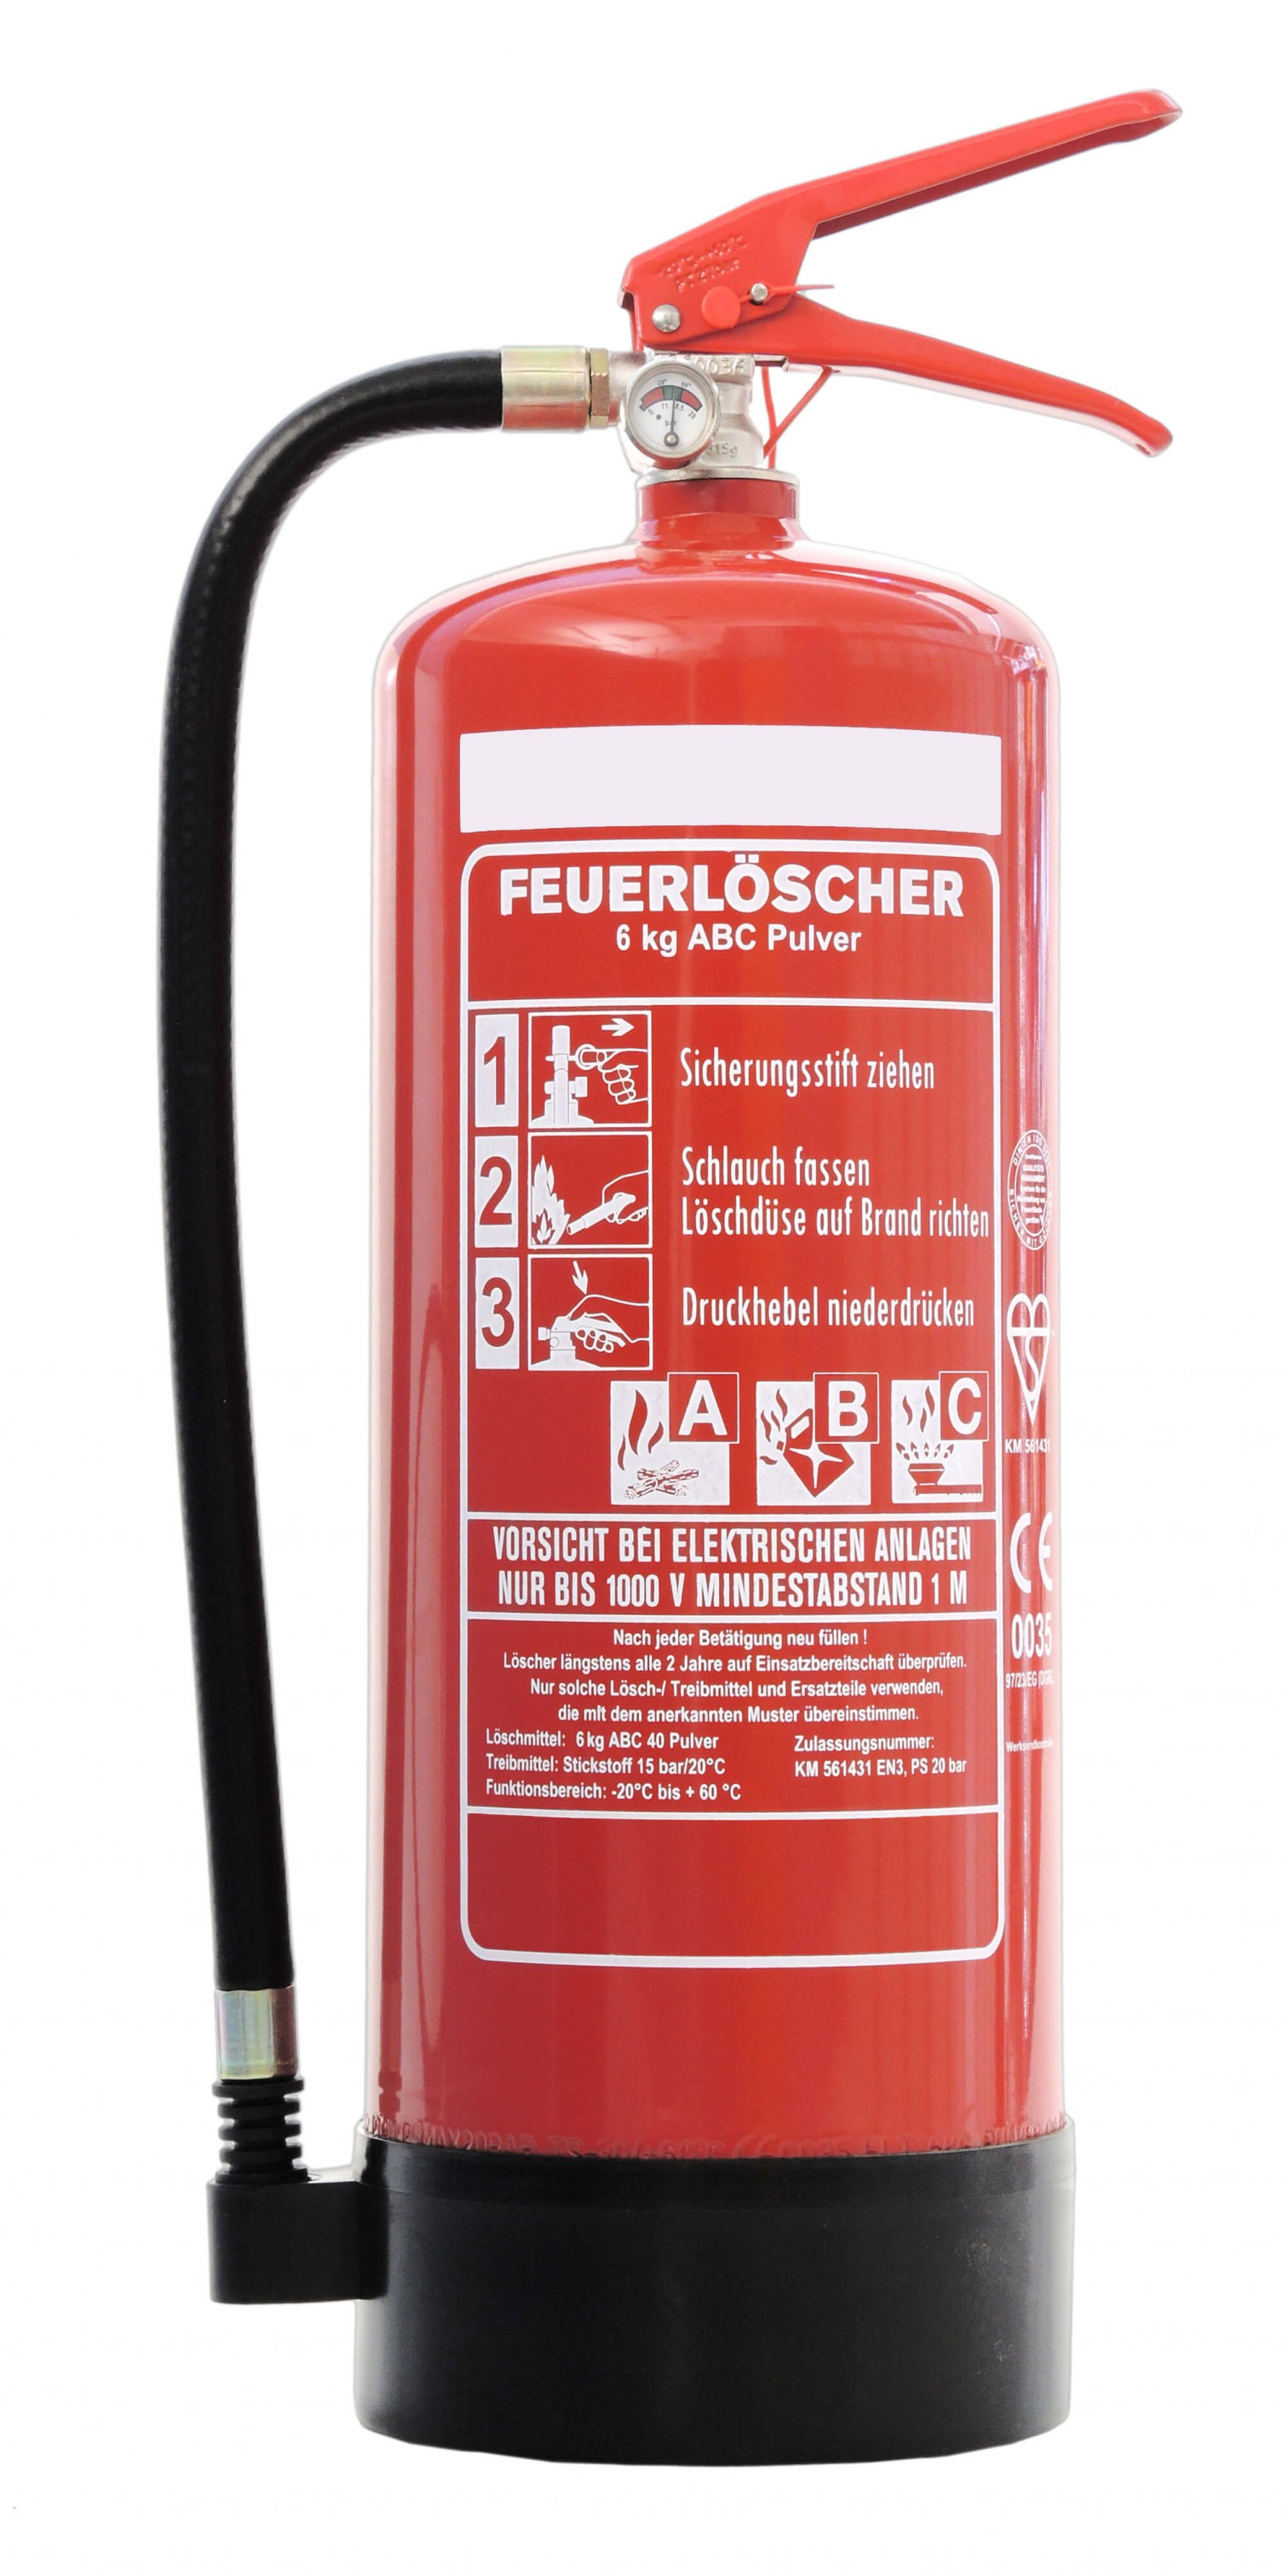 feuerl scher 6kg abc pulverl scher mit manometer en 3 und andris pr fnachweis feuerl scher. Black Bedroom Furniture Sets. Home Design Ideas